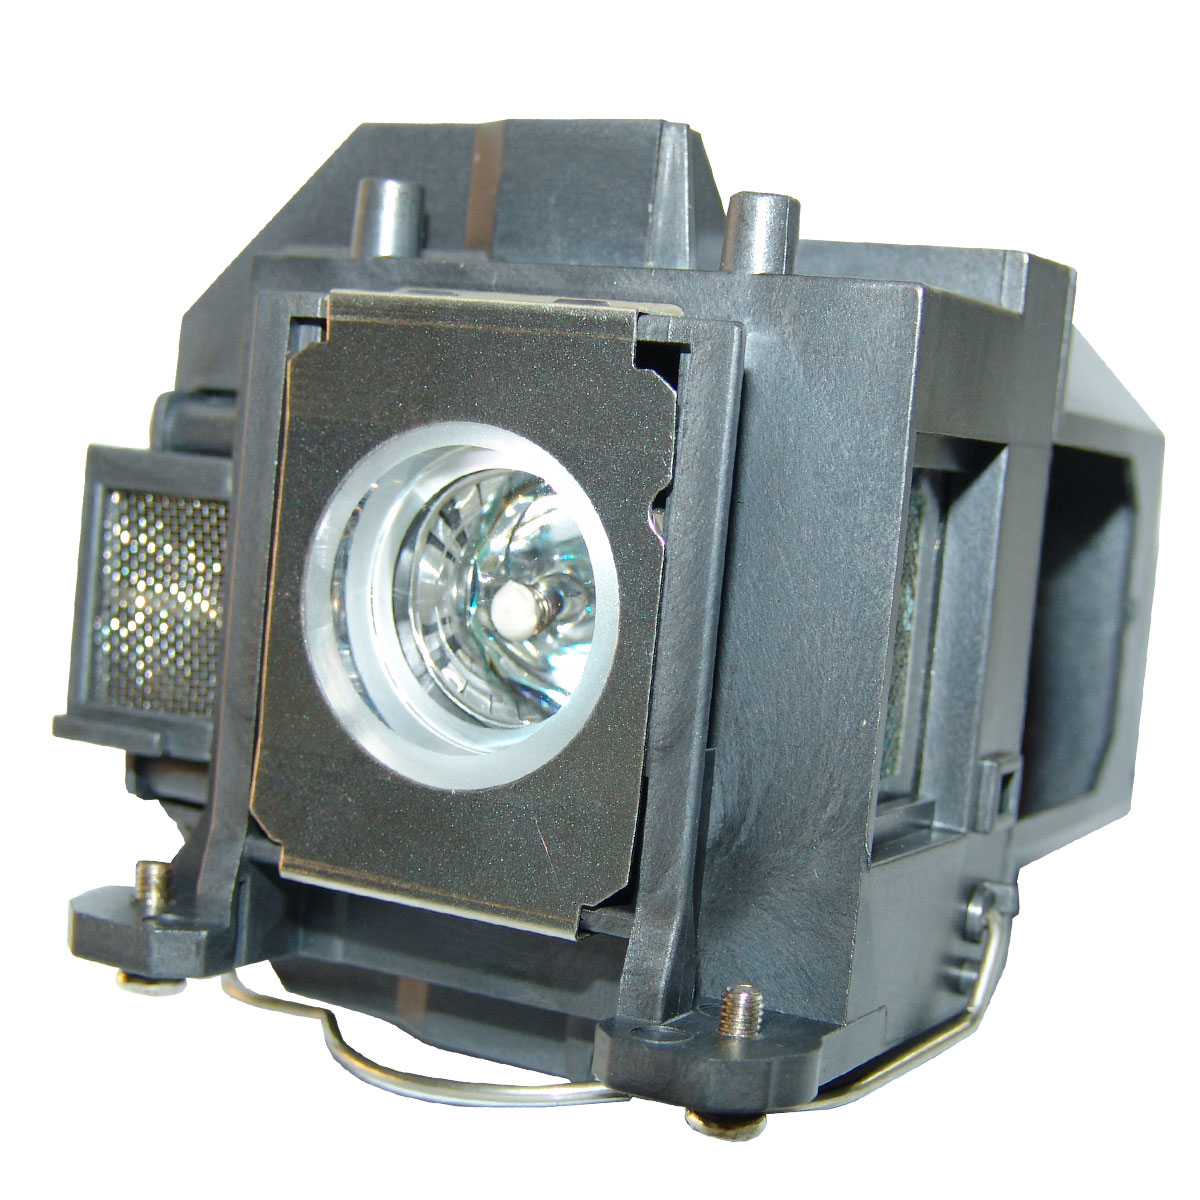 Epson Elplp57 Projector Lamp New Uhe Bulb At A Low Price